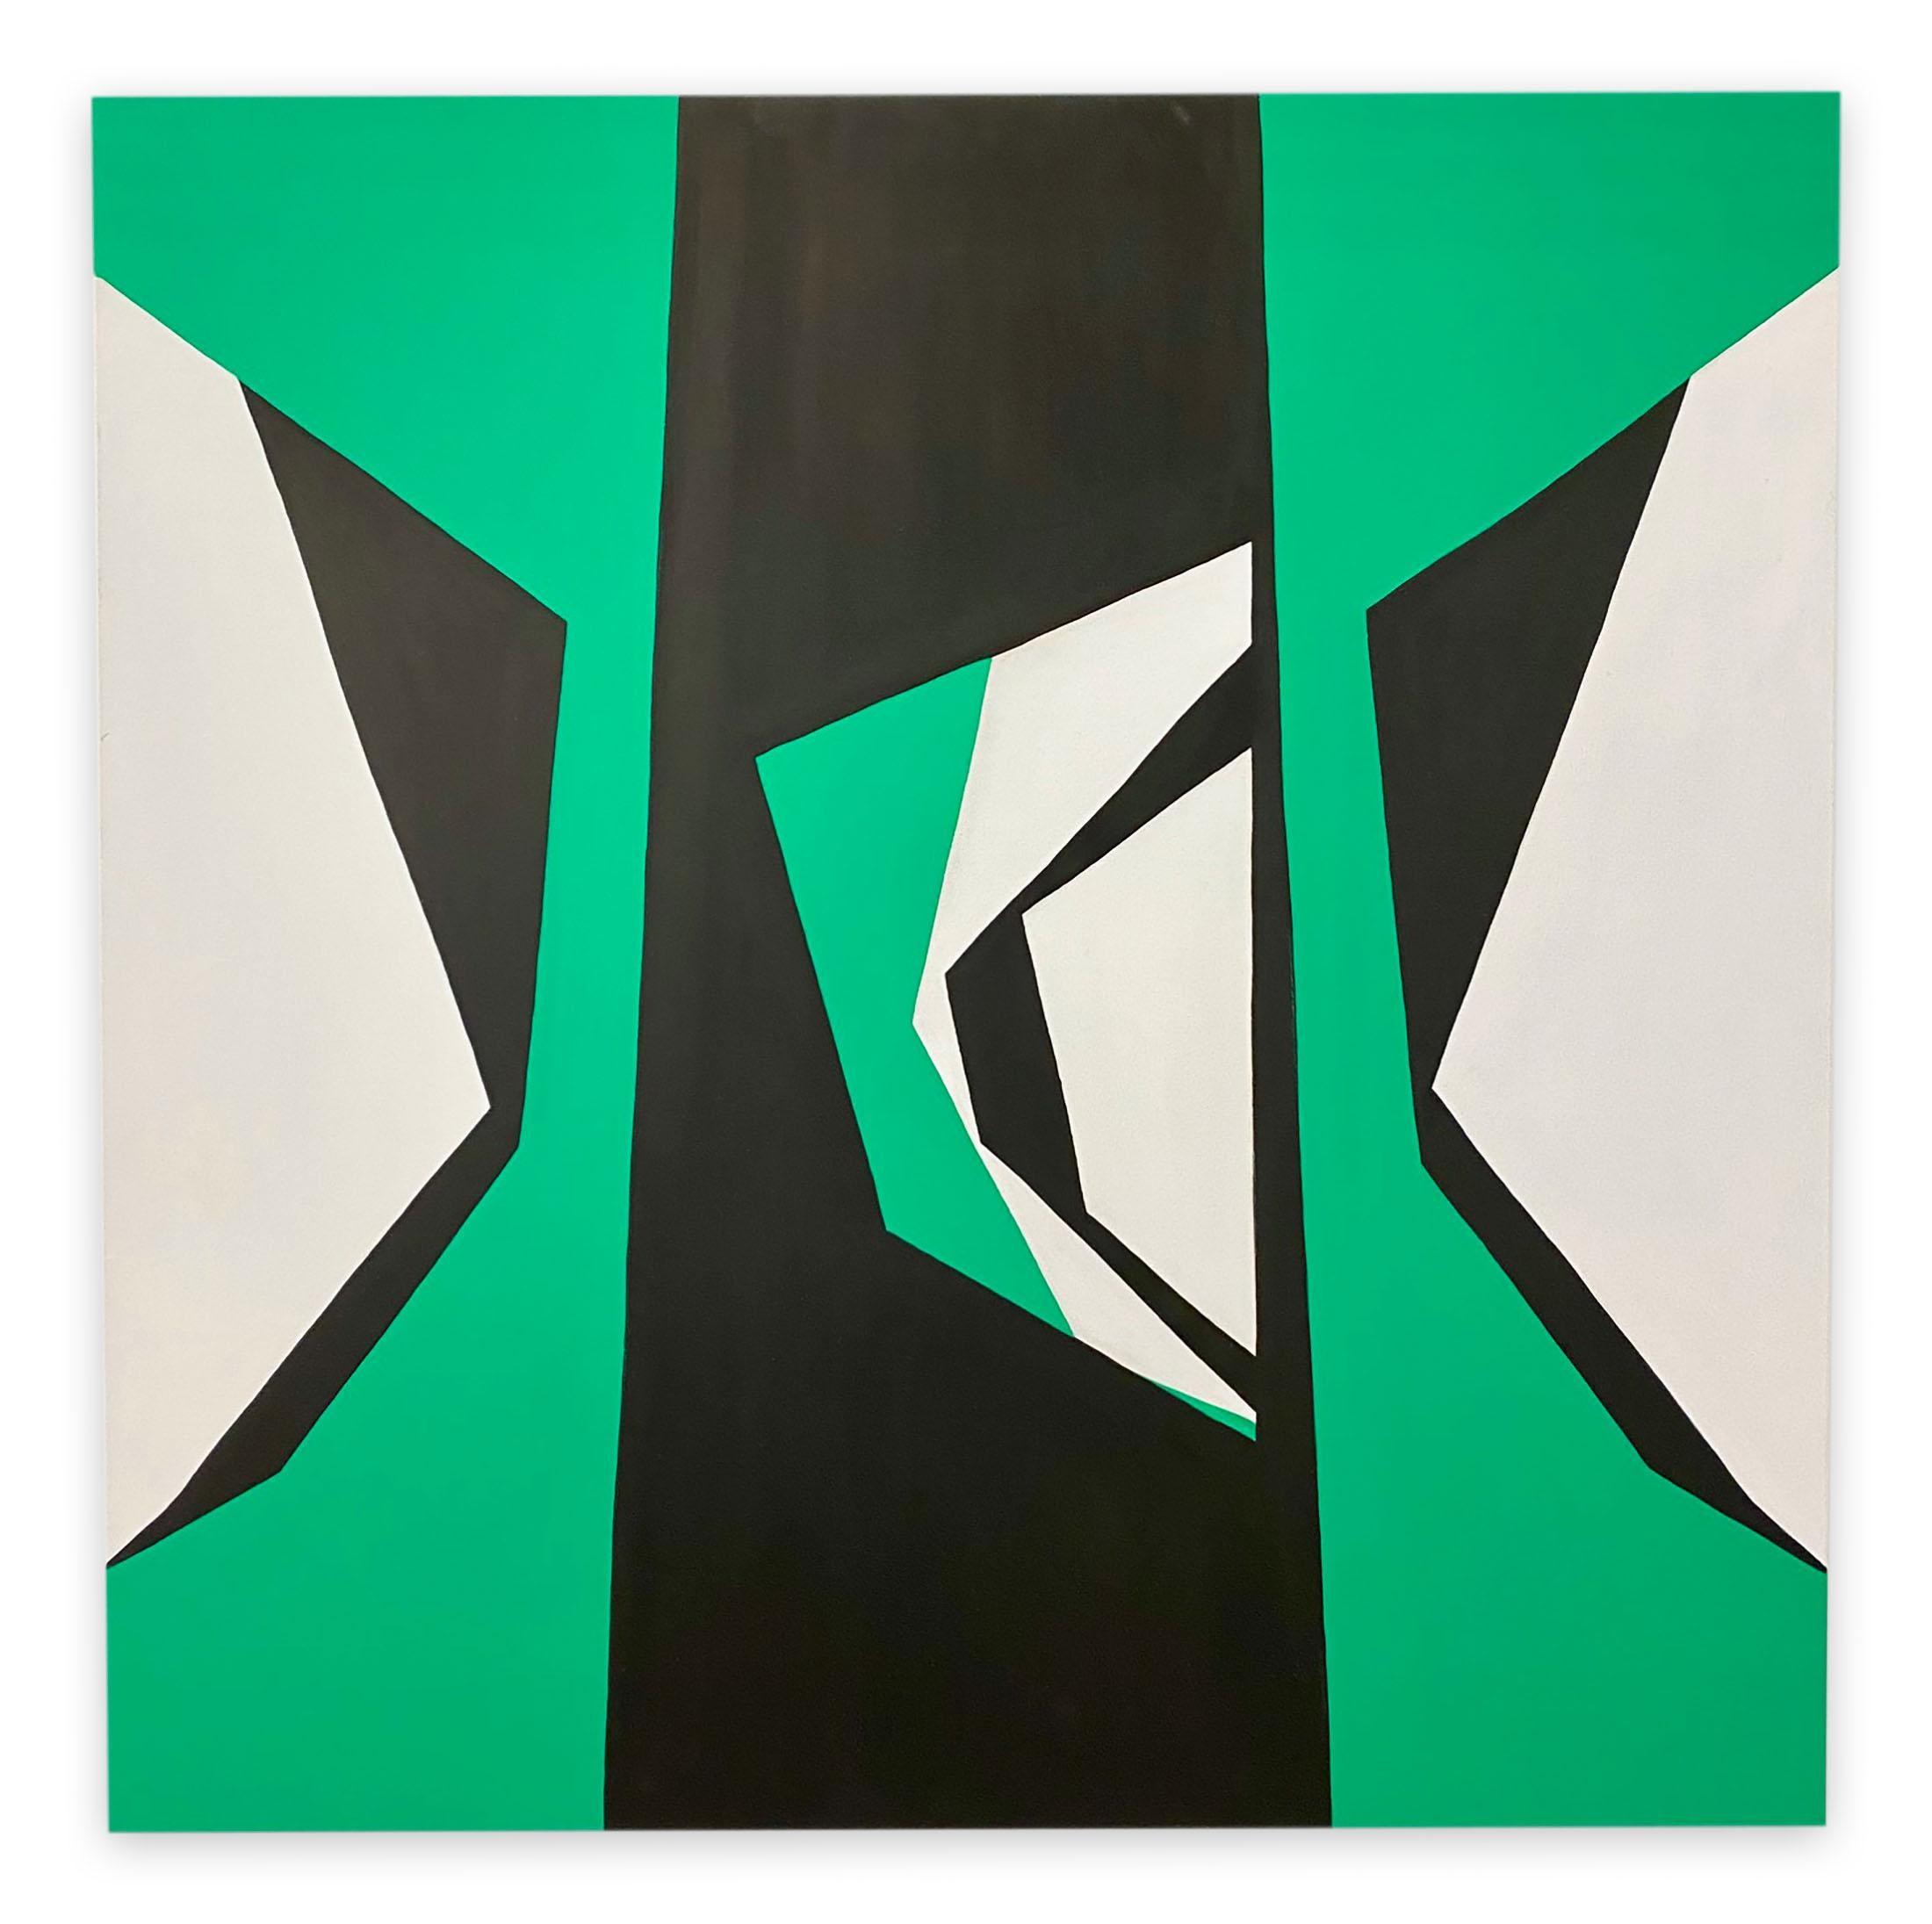 Cut-Up Canvas 2002 (Abstract painting)